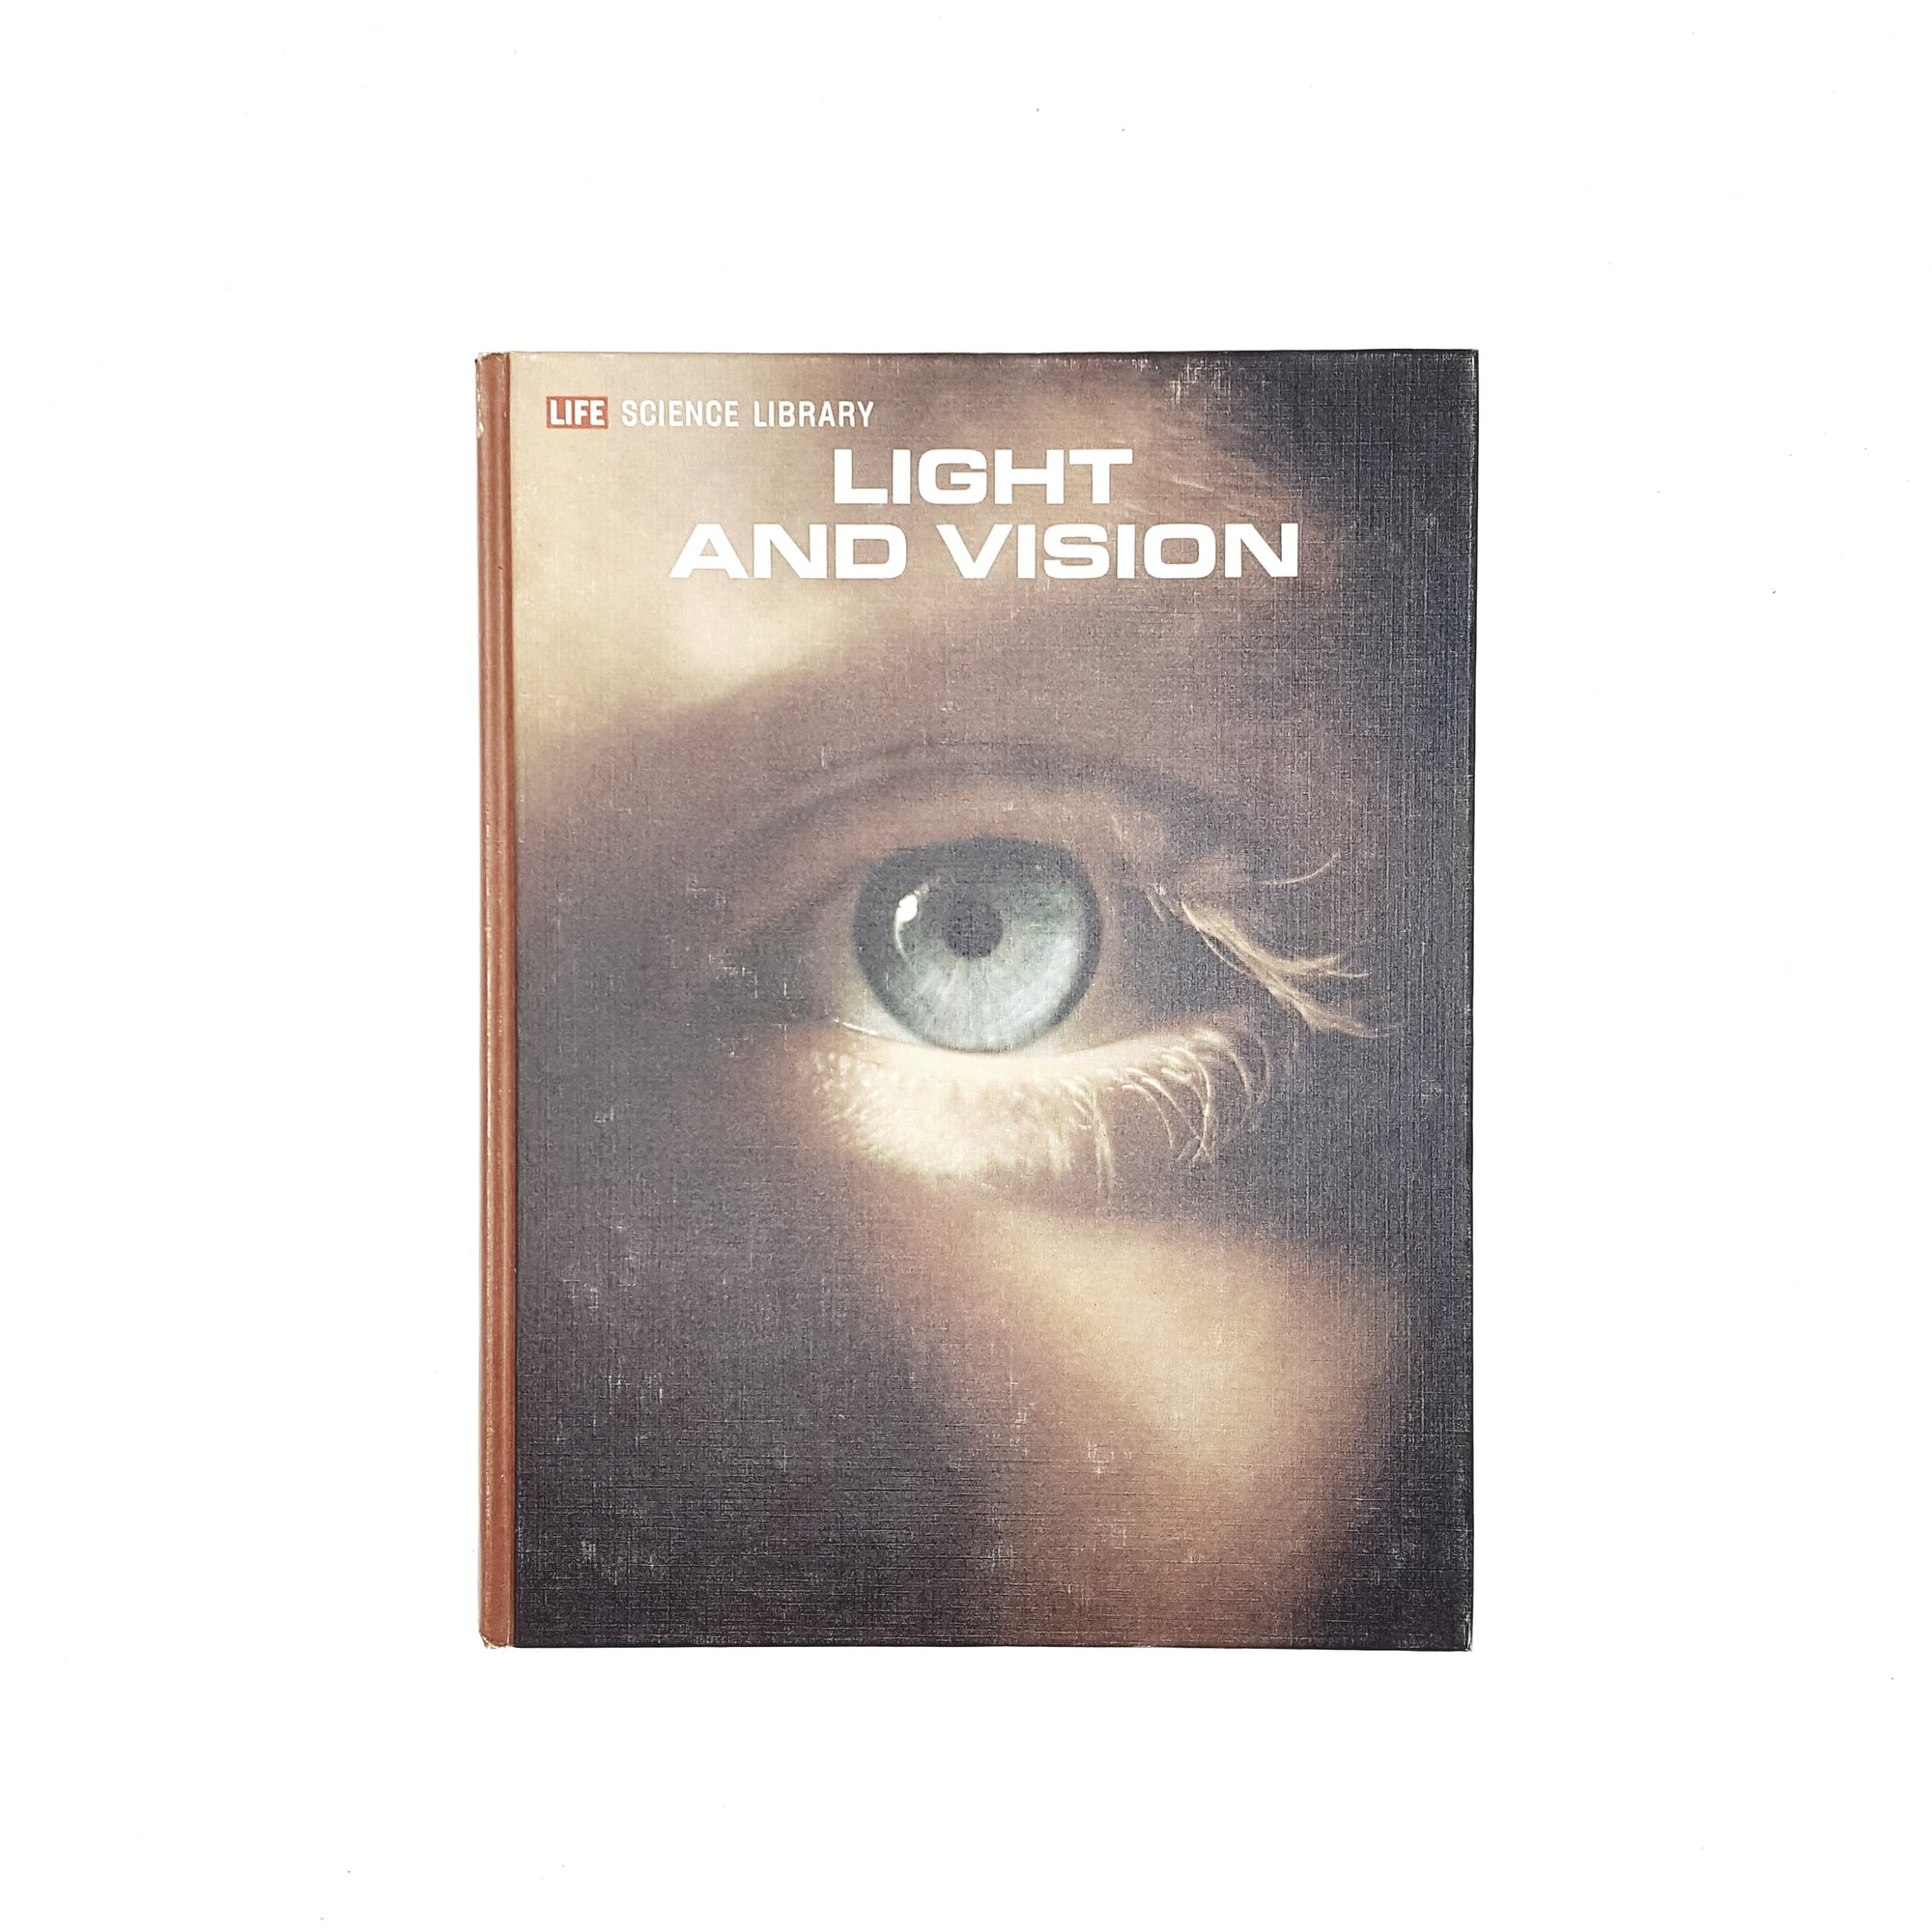 Life Science Library: Light and Vision 1972